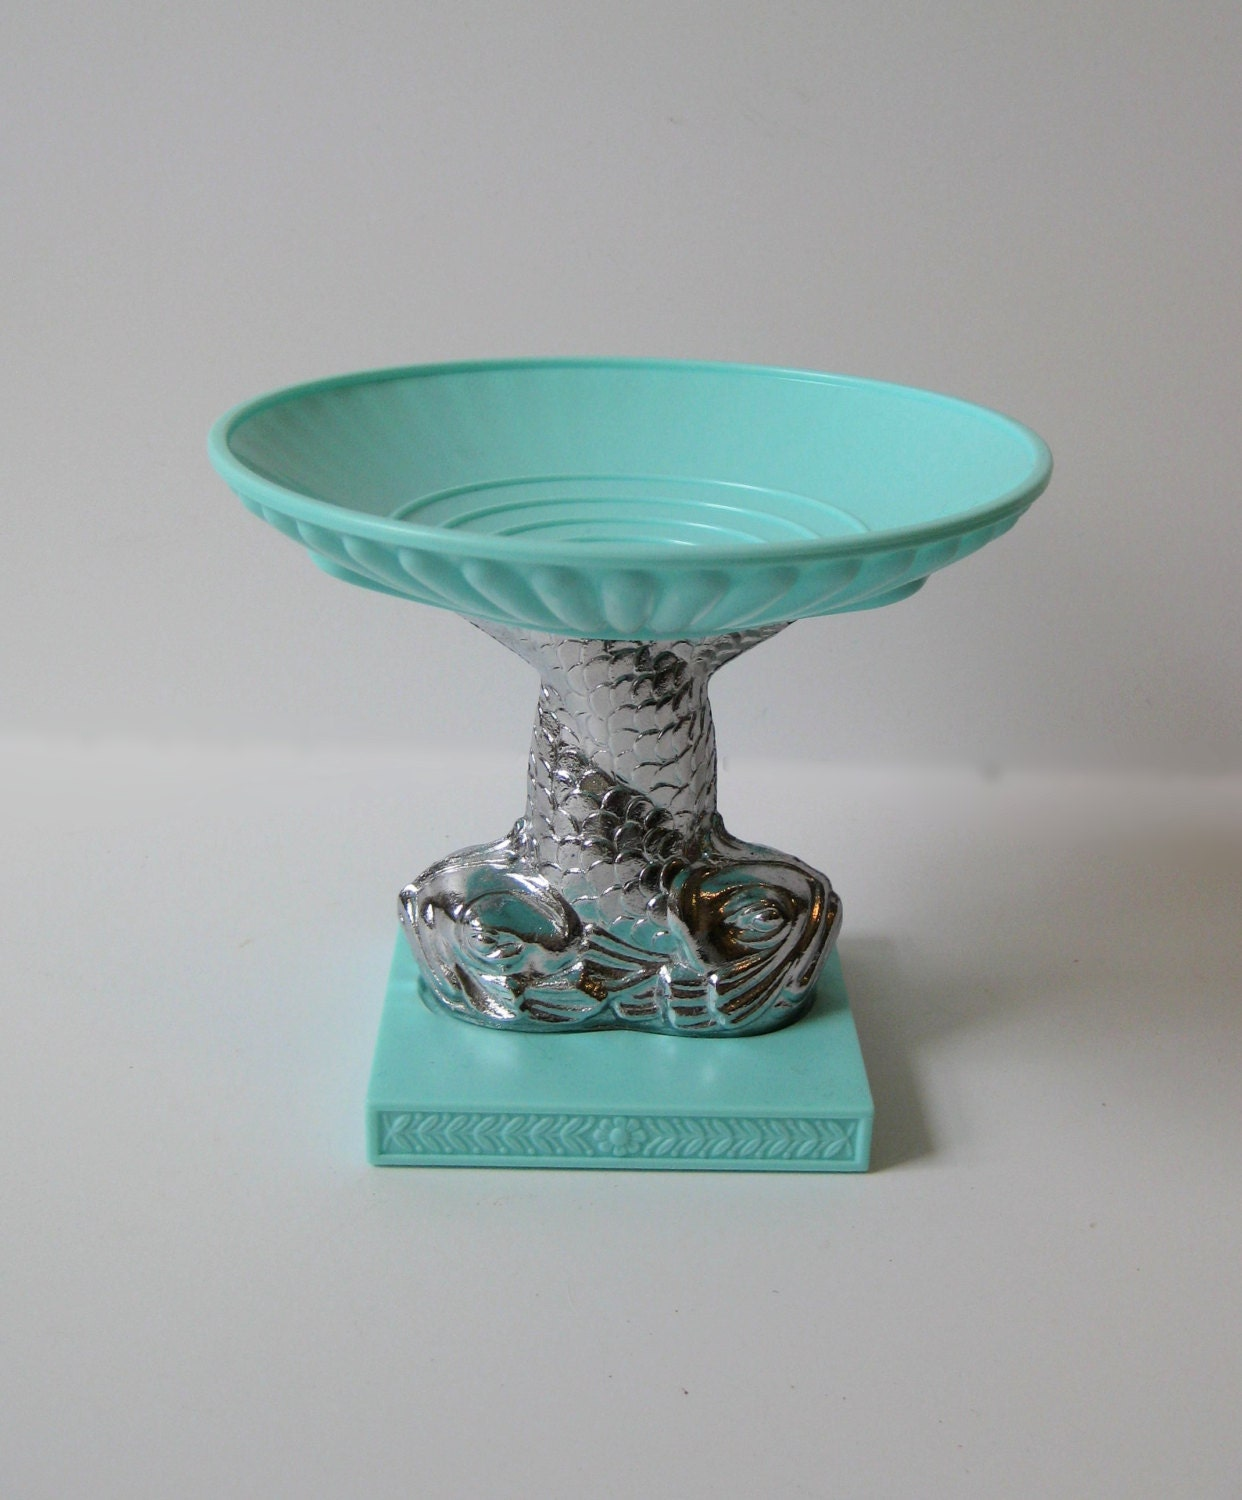 Avon soap dish turquoise bath decor vintage avon beach bath for Turquoise bathroom decor